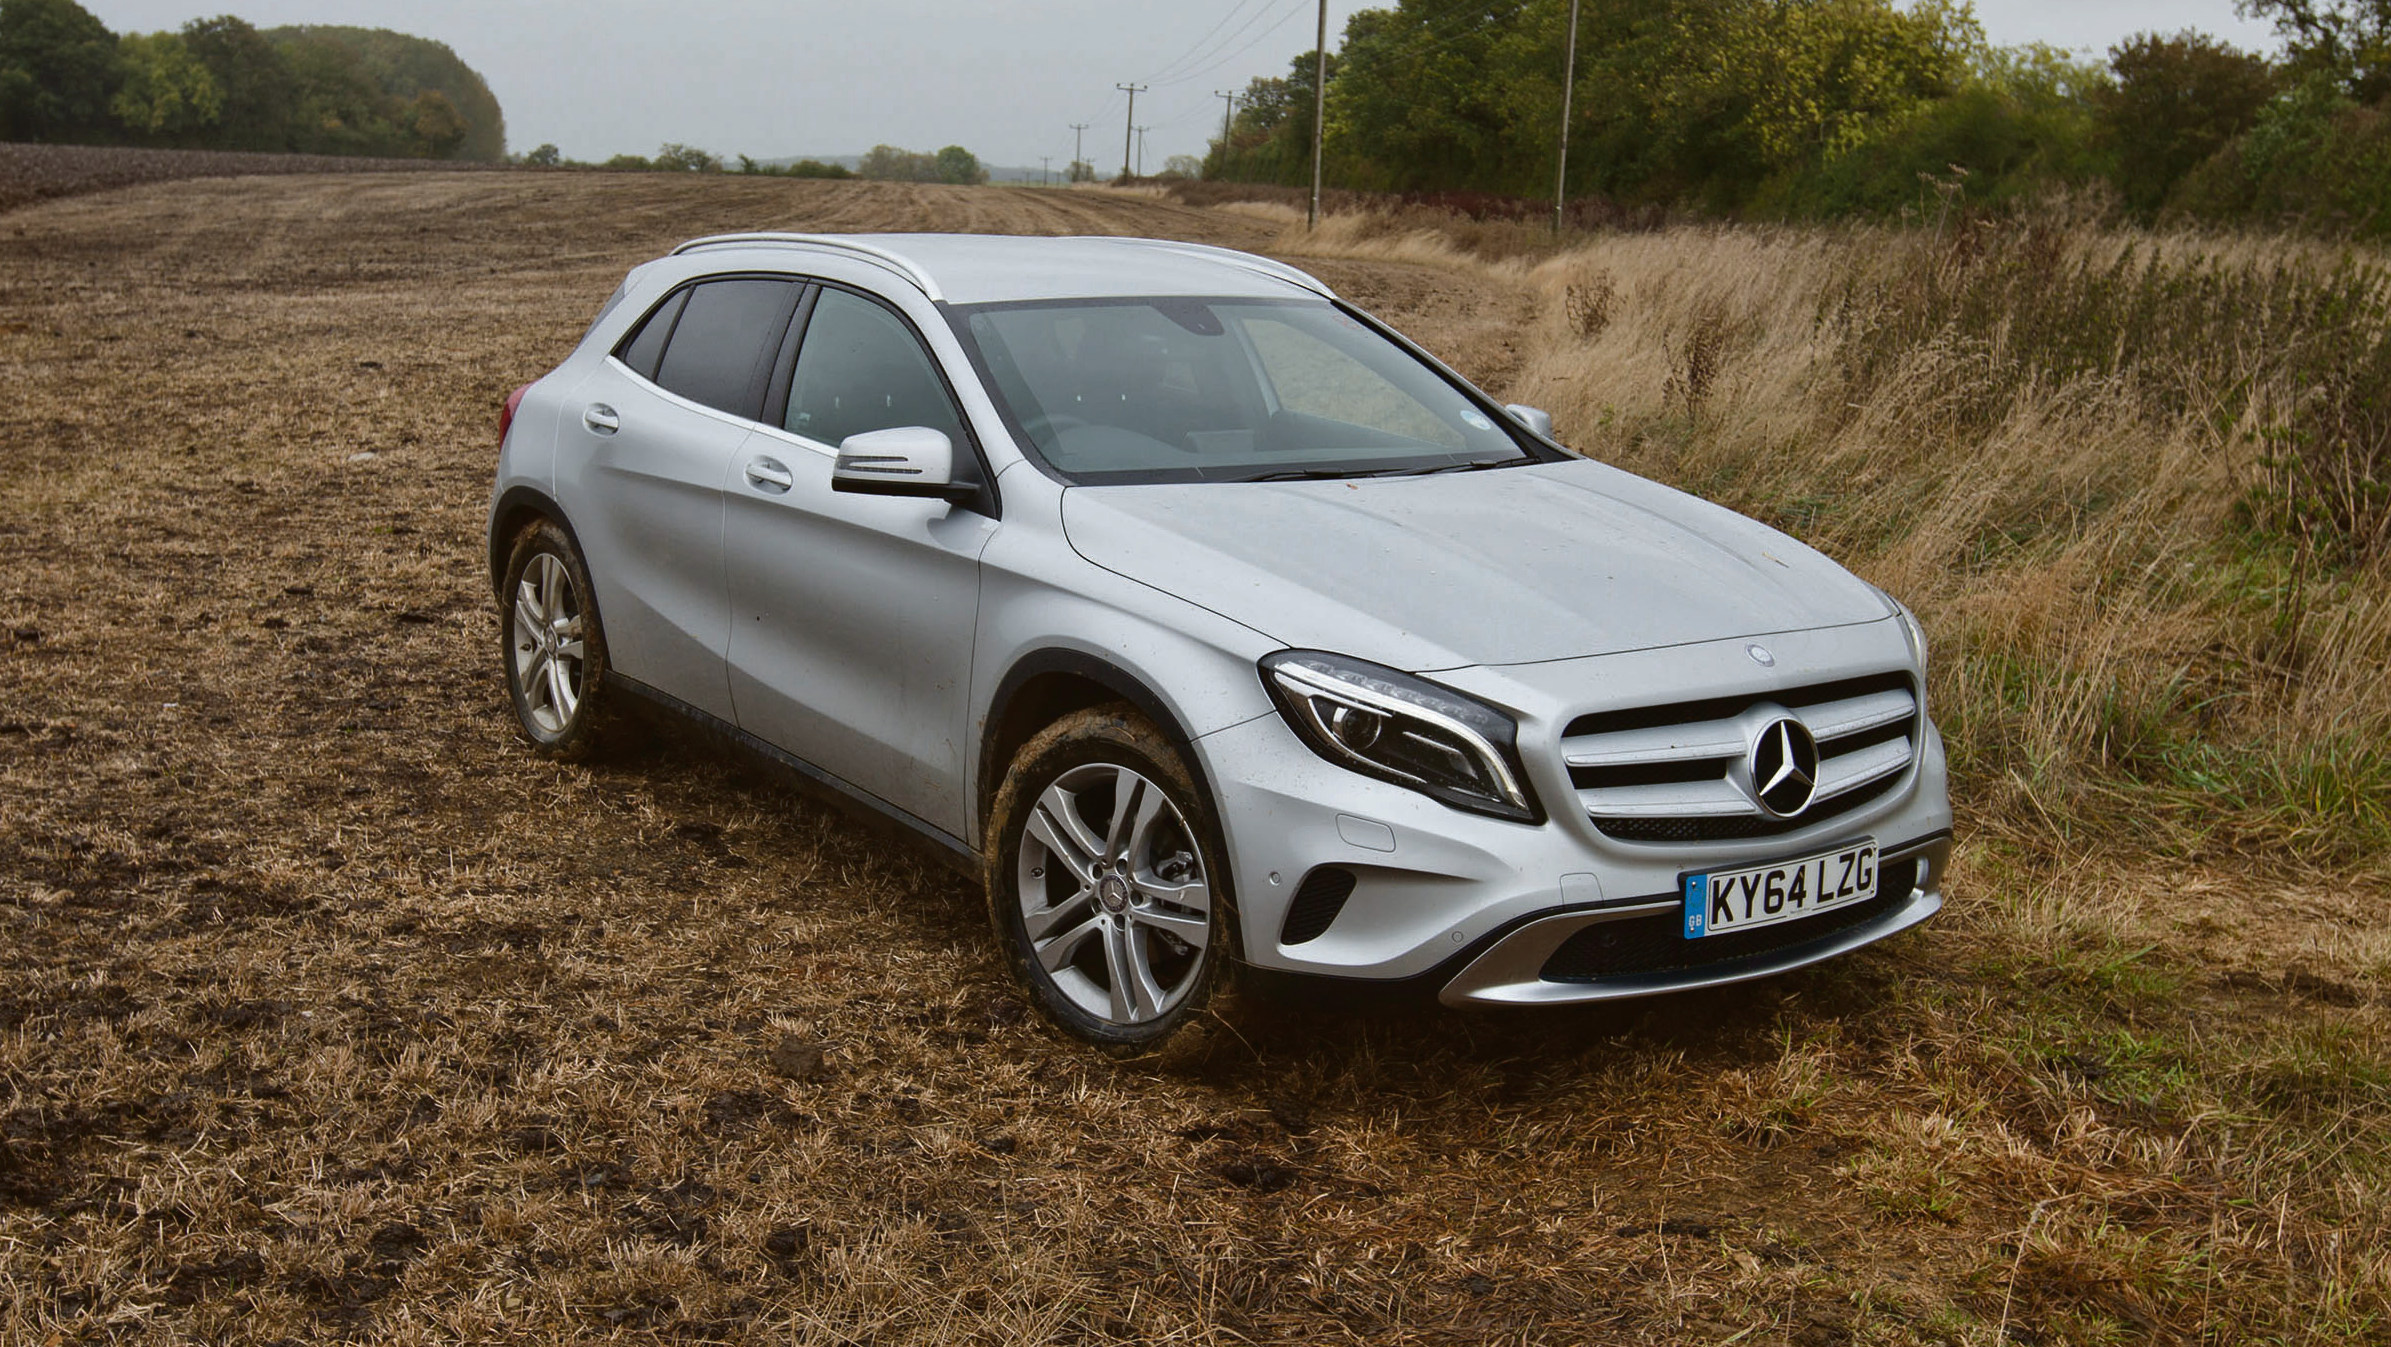 Road test: Classy crossover from Mercedes